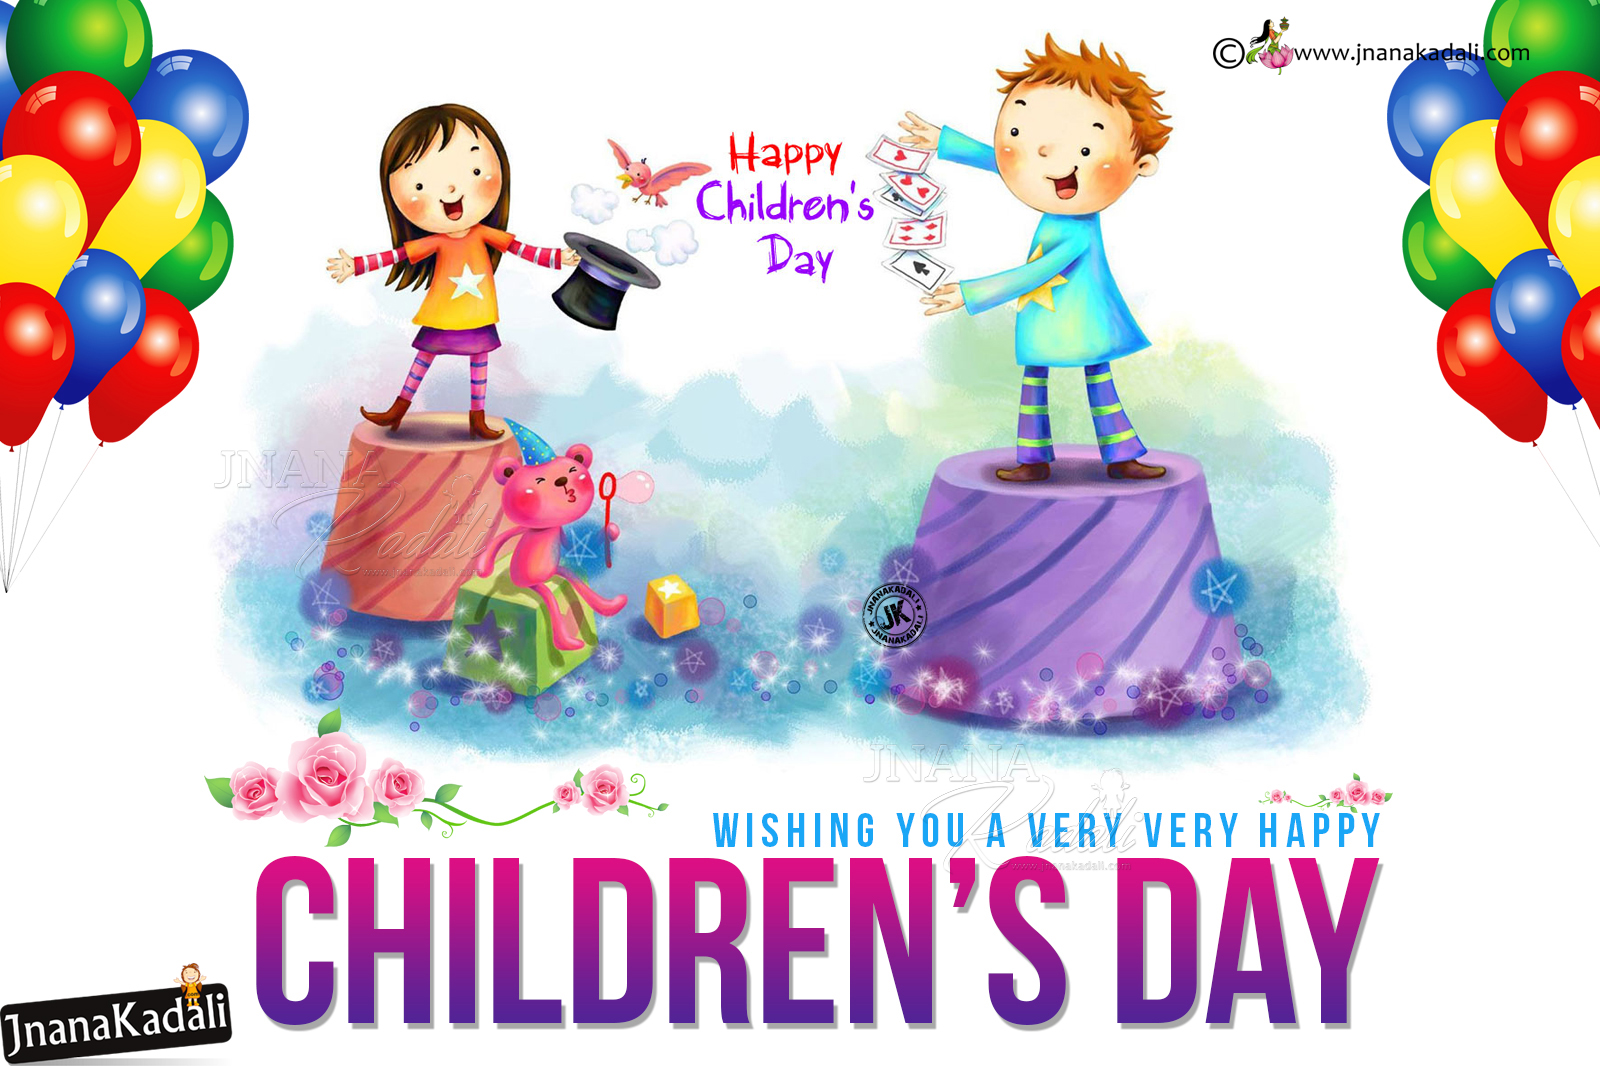 English Childrens Day Greetings Hd Wallpapers Free Download 2017